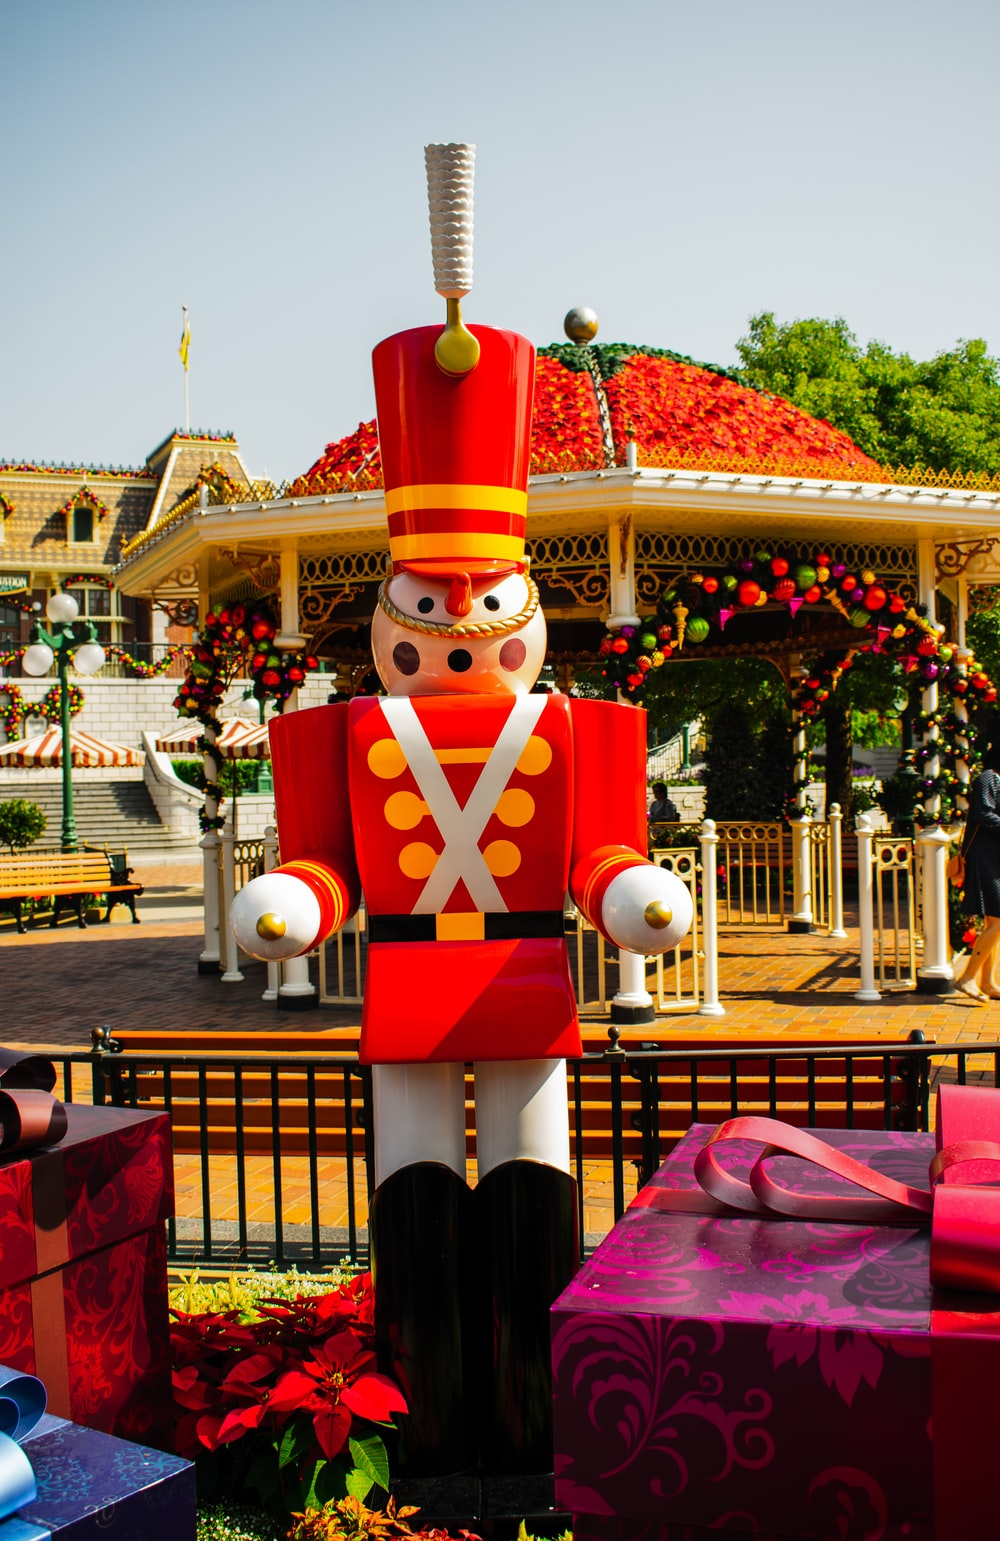 nutcracker statue in between of gift boxes